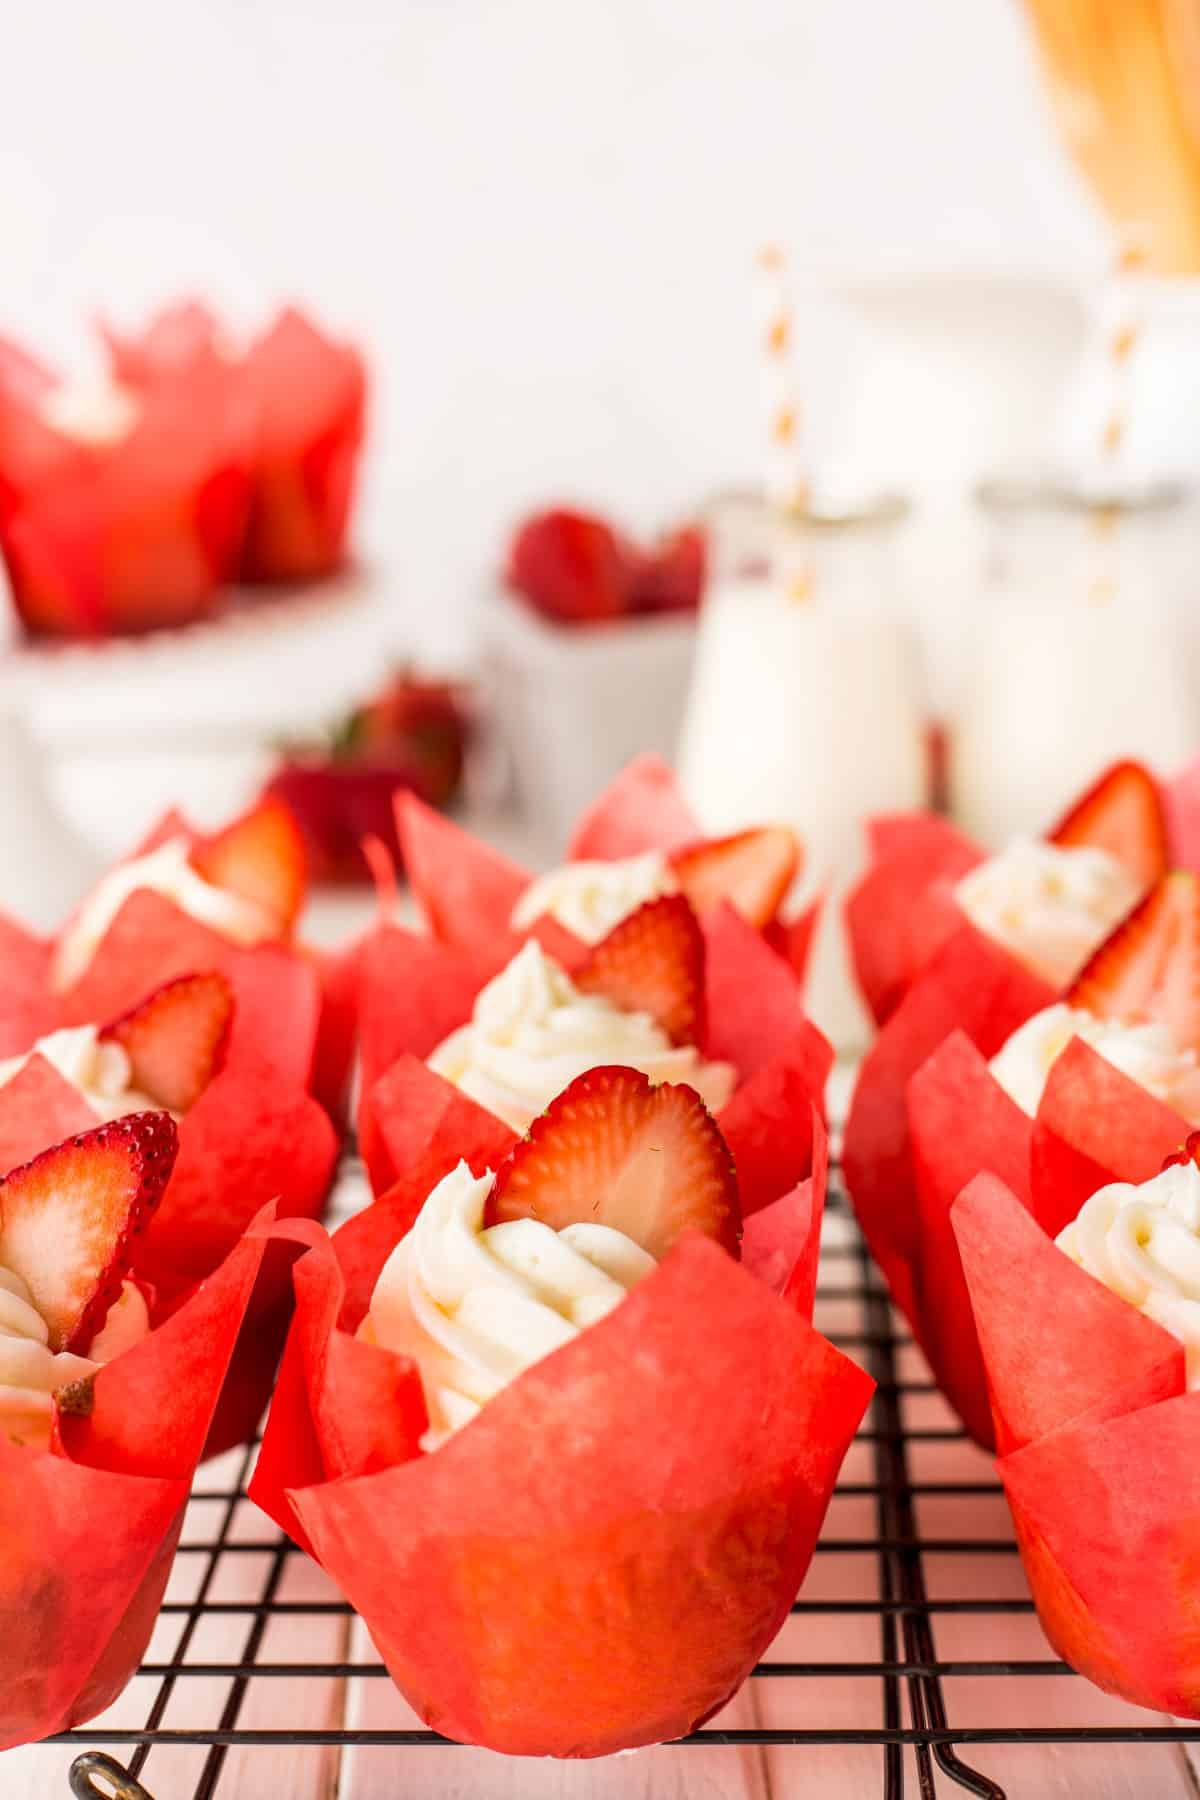 Strawberry Shortcake Cupcakes on a wire rack.